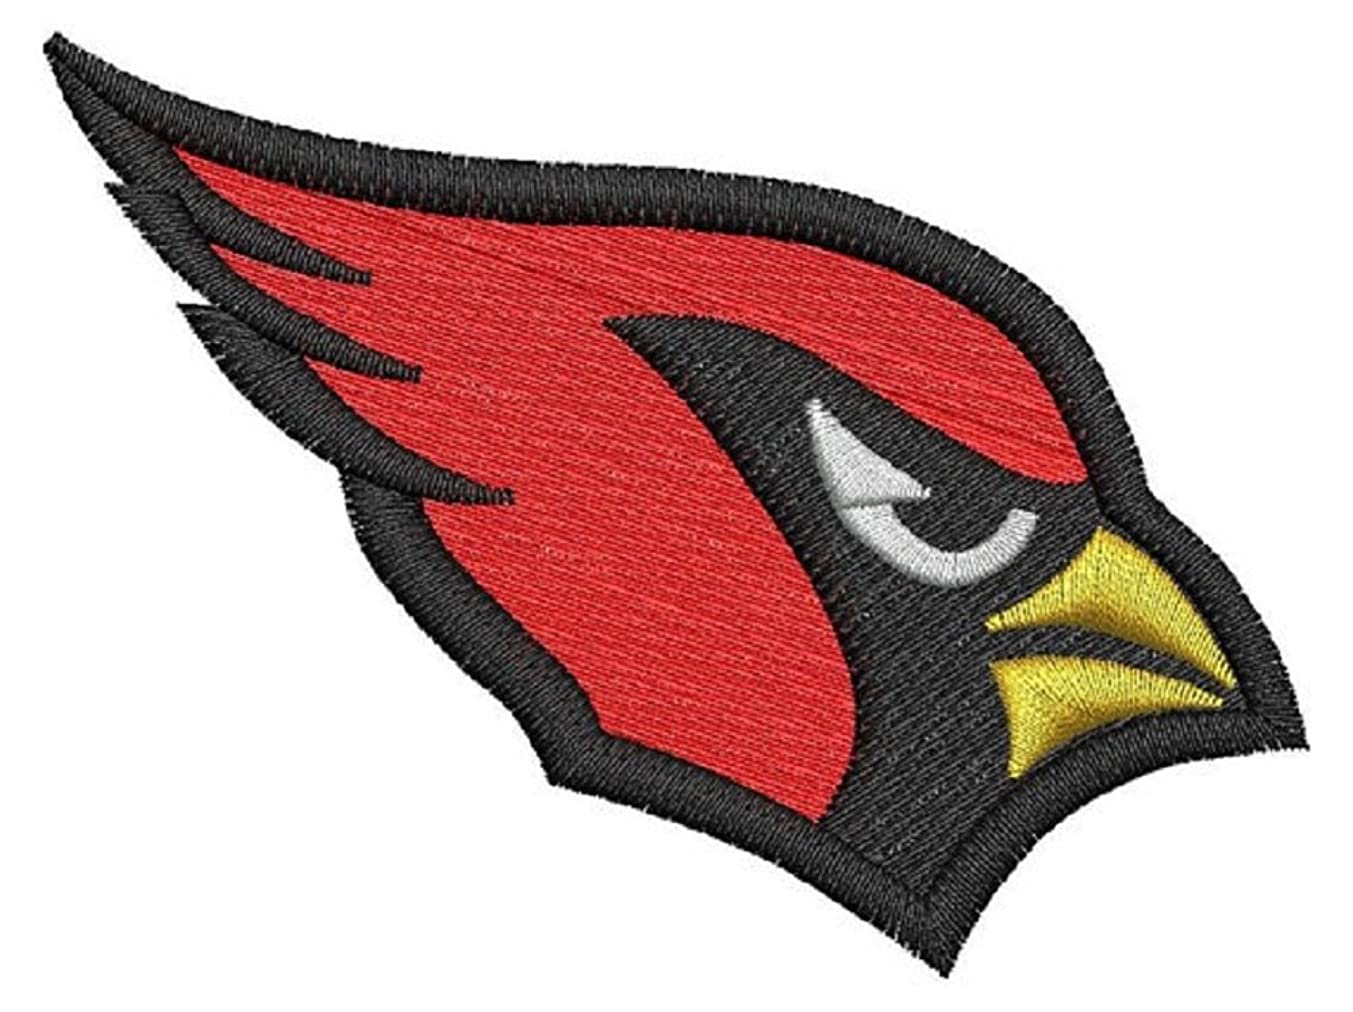 3 pcs cardinal patch embroidered iron on applique sew on (Large, Red)